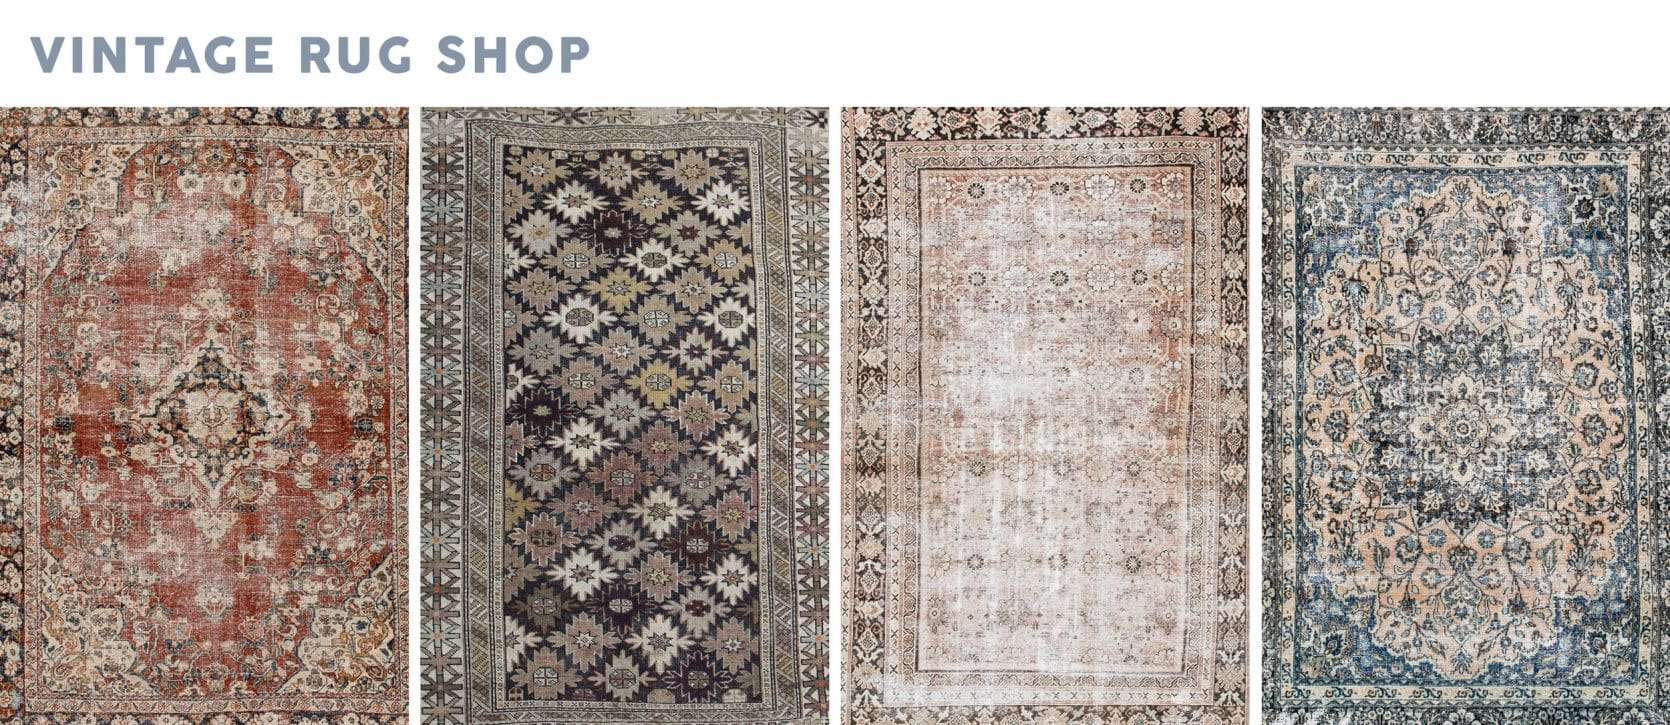 Where to Buy Vintage Rugs + Best